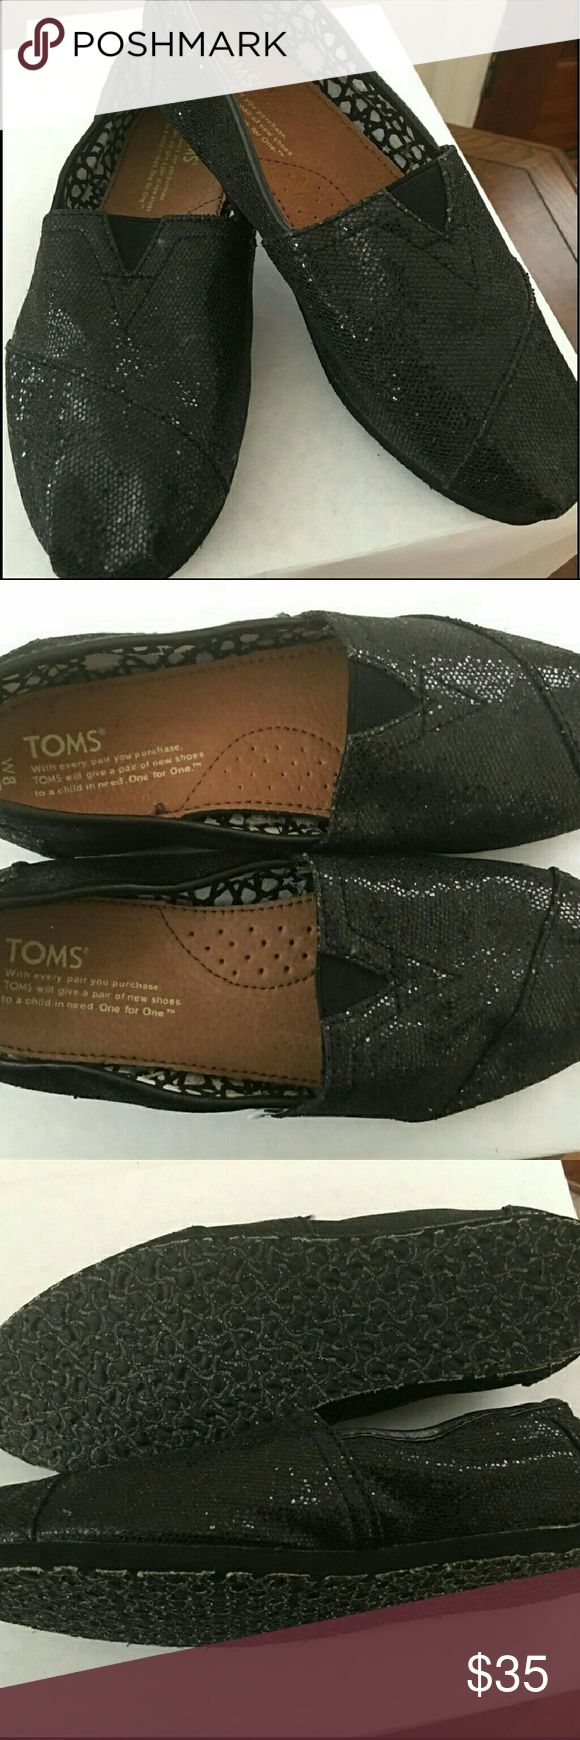 Brand new black glitter toms! Womans black glitter toms Brand new never been worn!! Toms Shoes Flats & Loafers